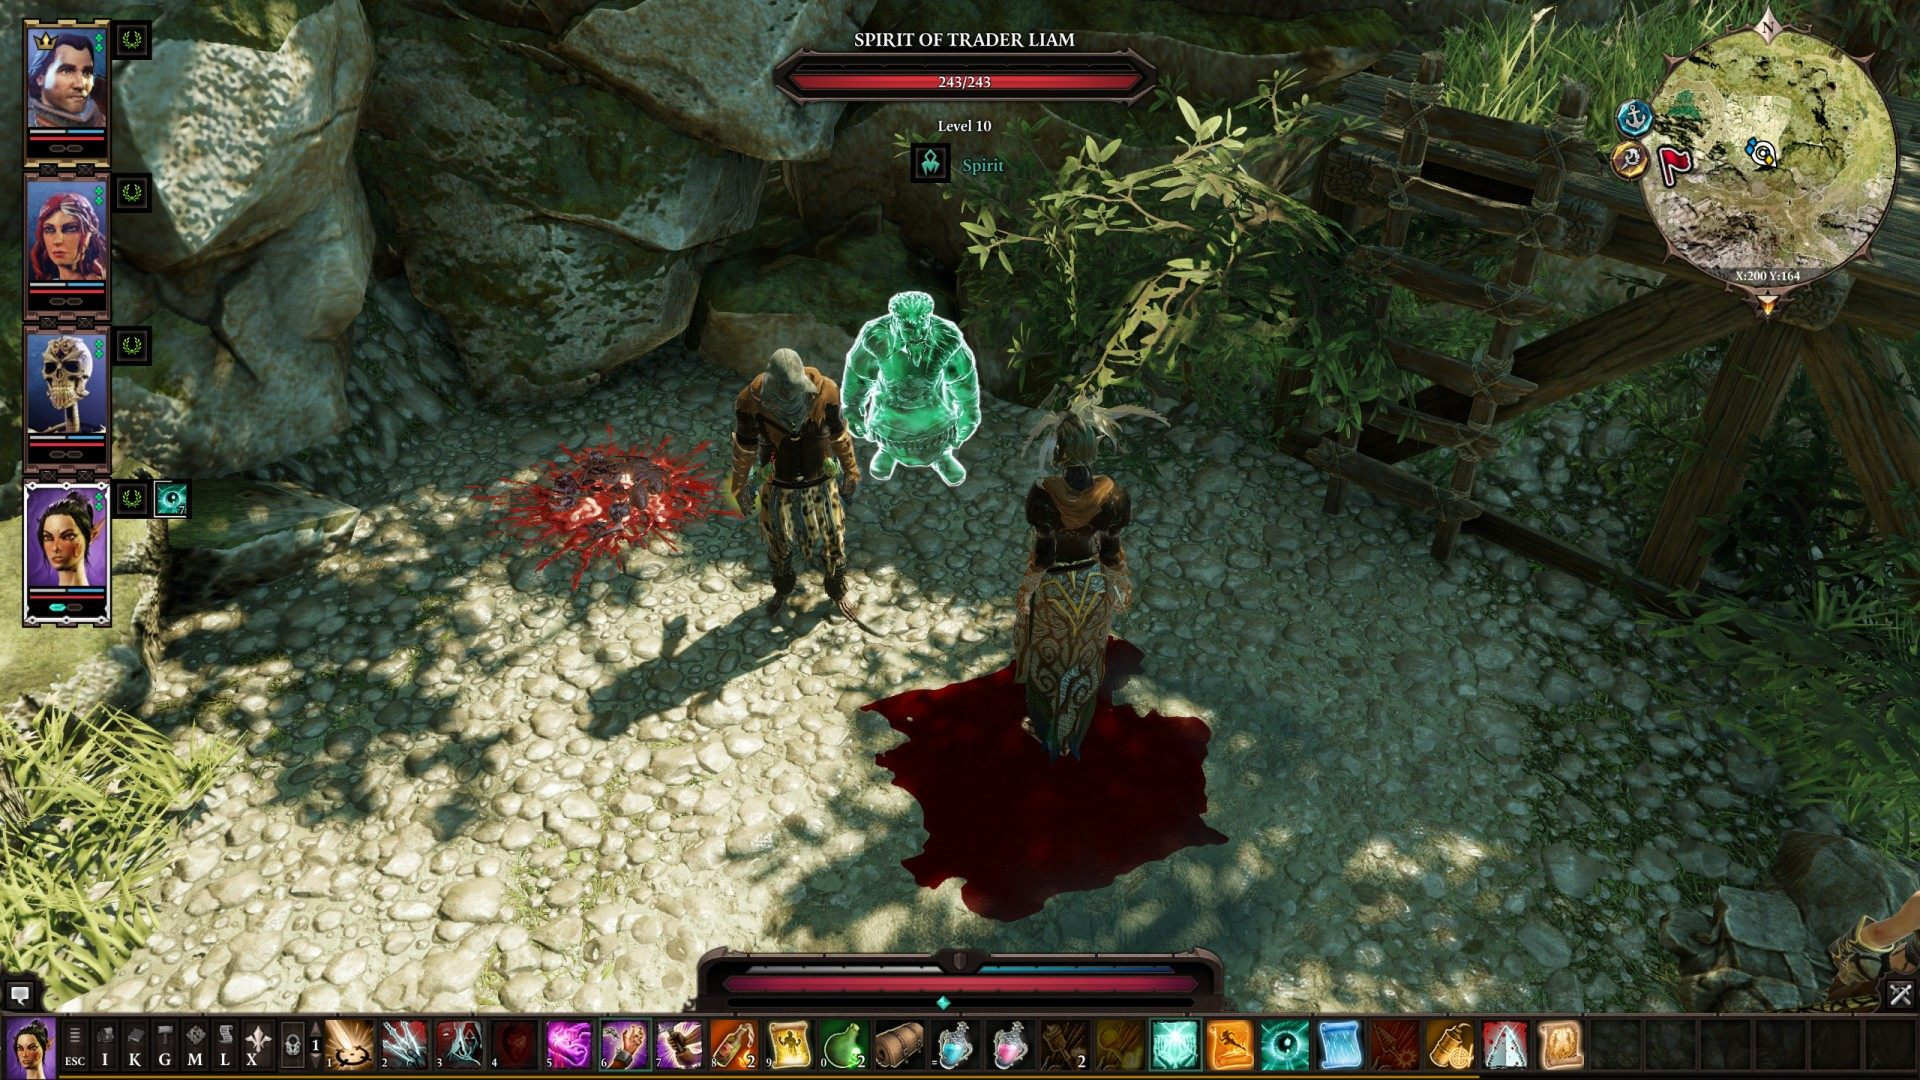 Premise Indicator Words: Aggressive Takeover, Divinity: Original Sin 2 Quest